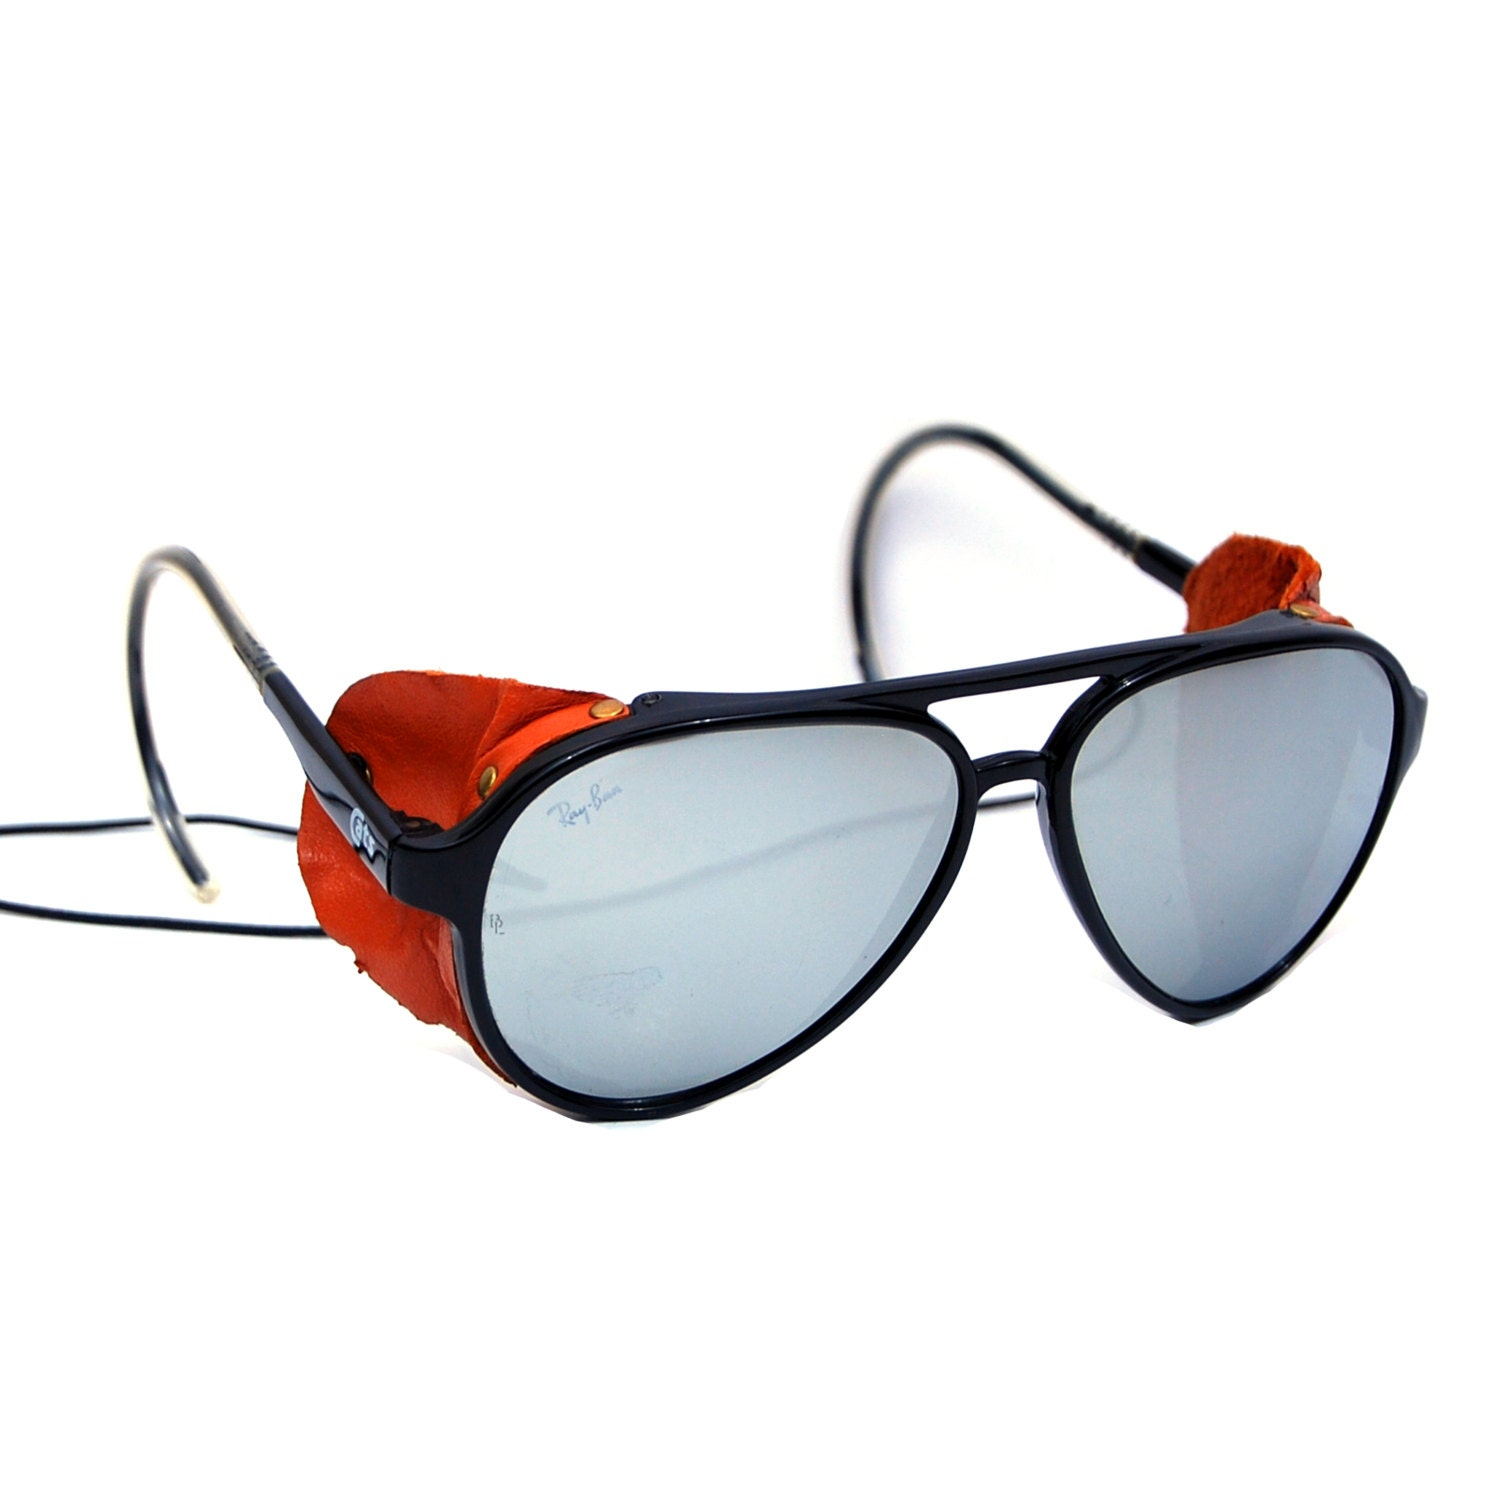 d206b8828de Ray Ban Leathers Bausch   Lomb